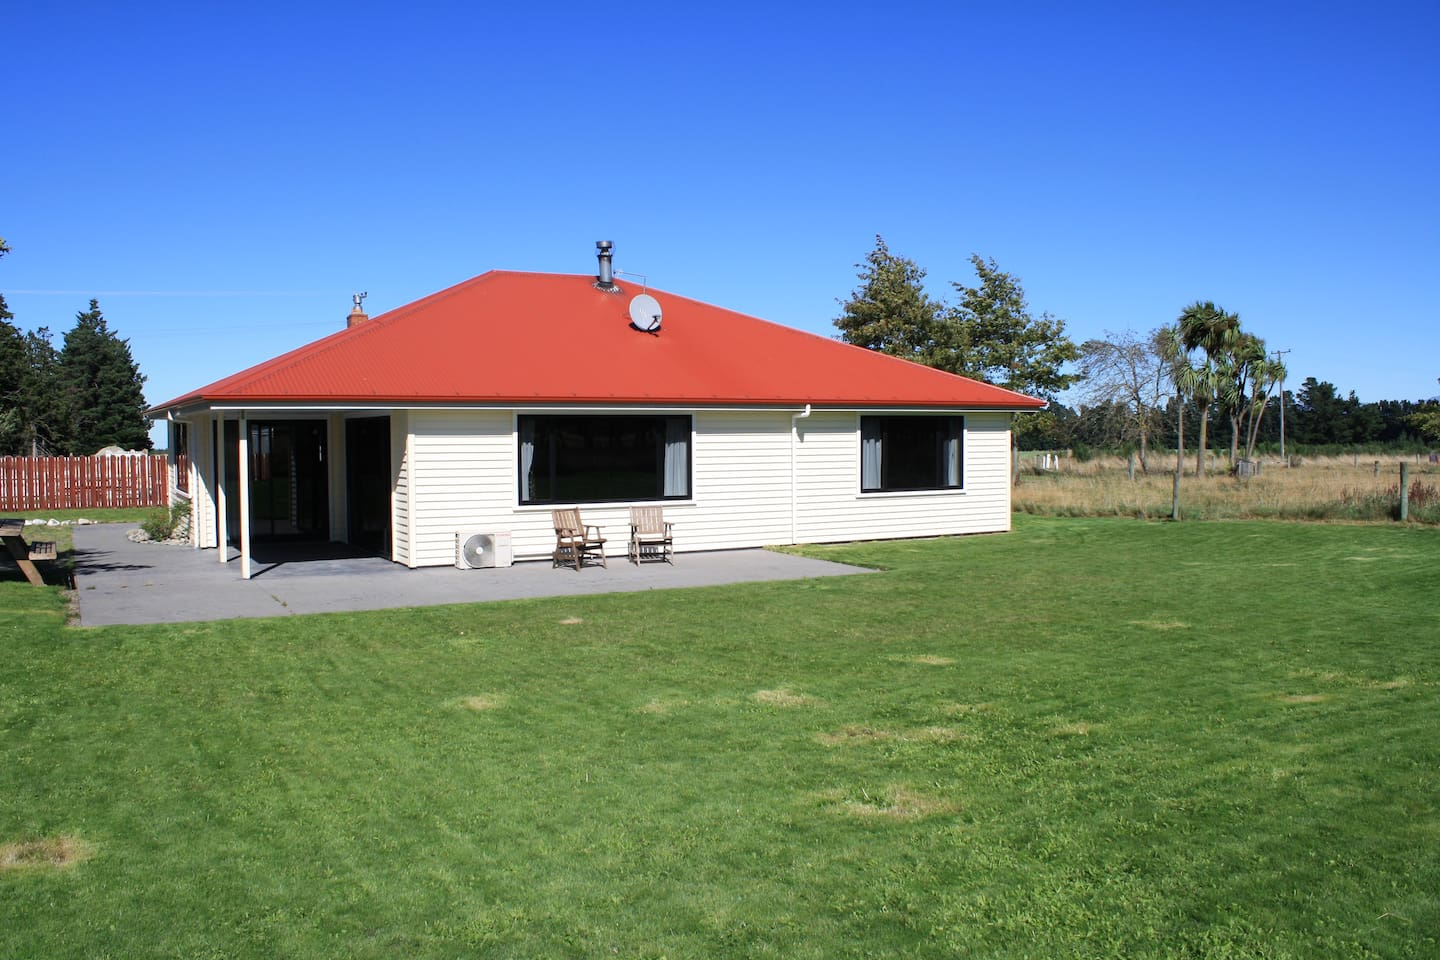 House, Deck and Lawn area